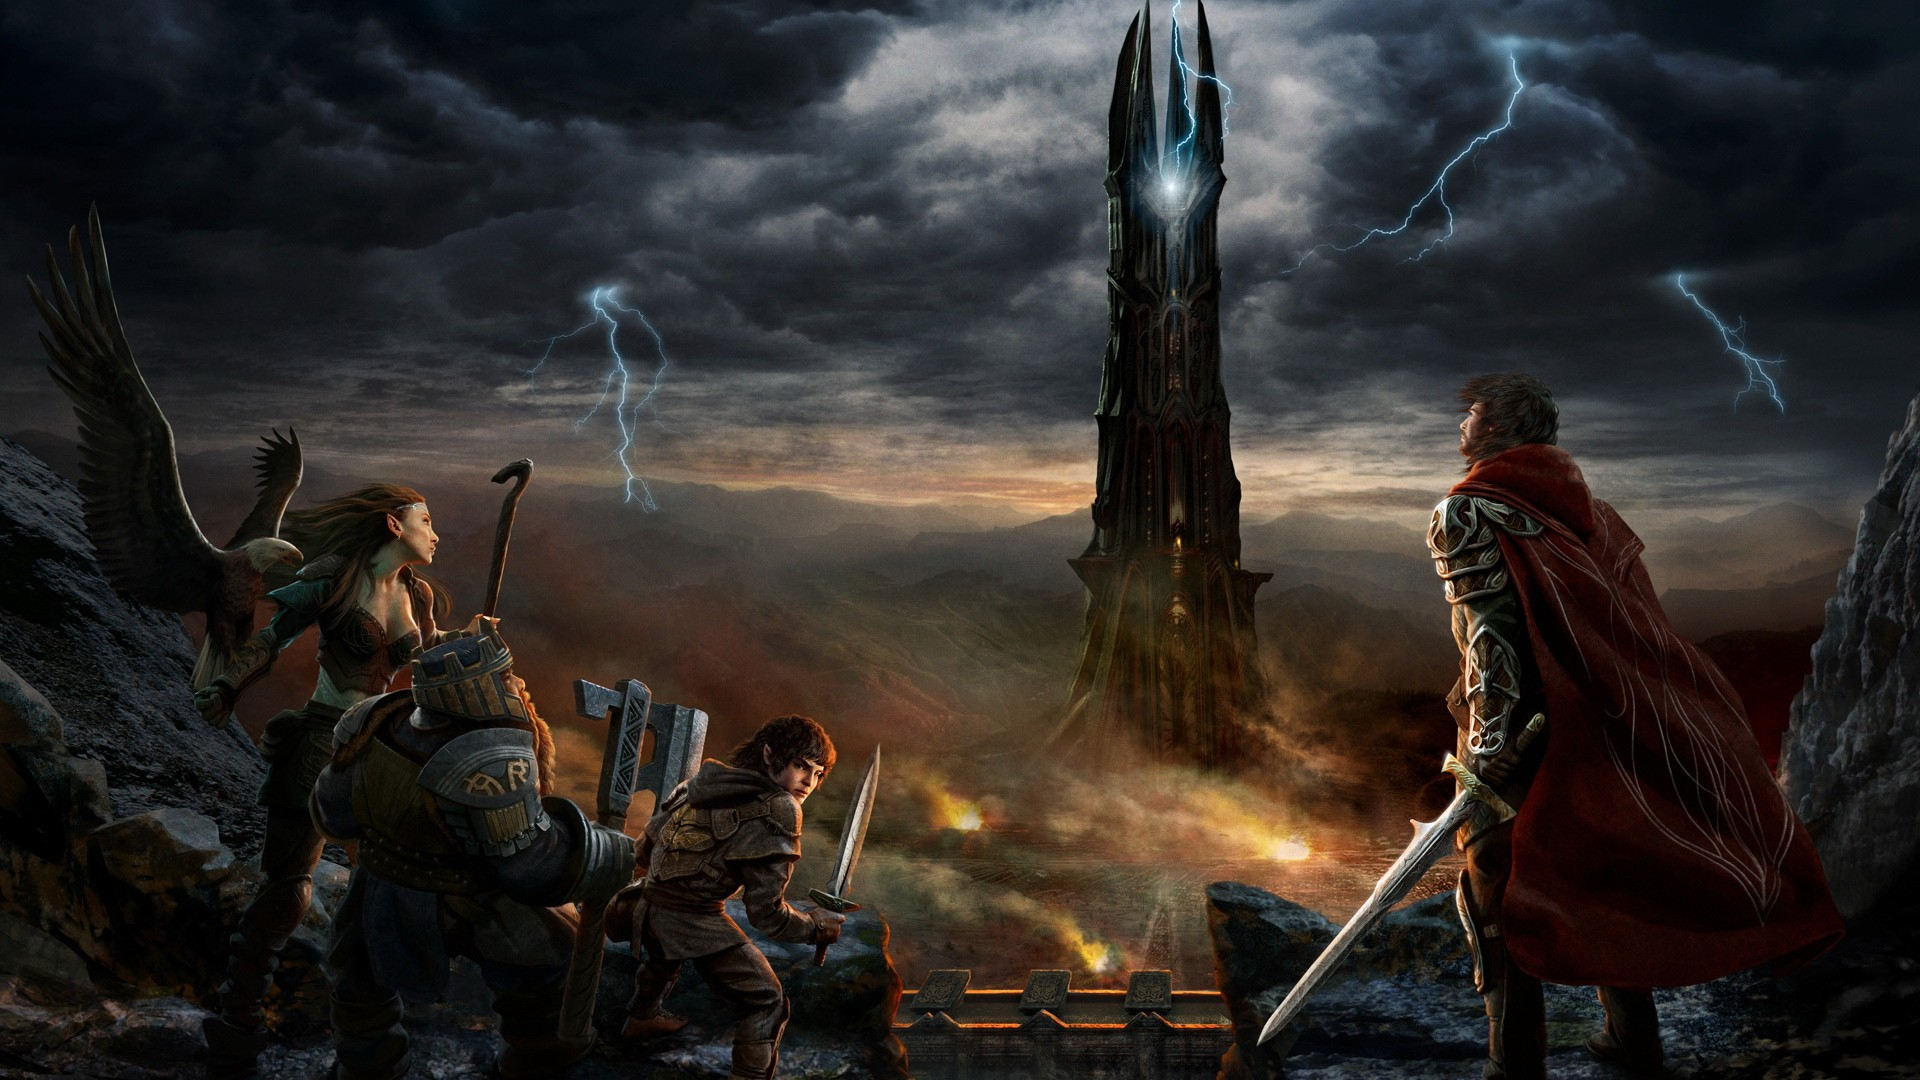 Tower Sauron Wallpaper 1920x1080 Tower Sauron Human The Lord Of 1920x1080